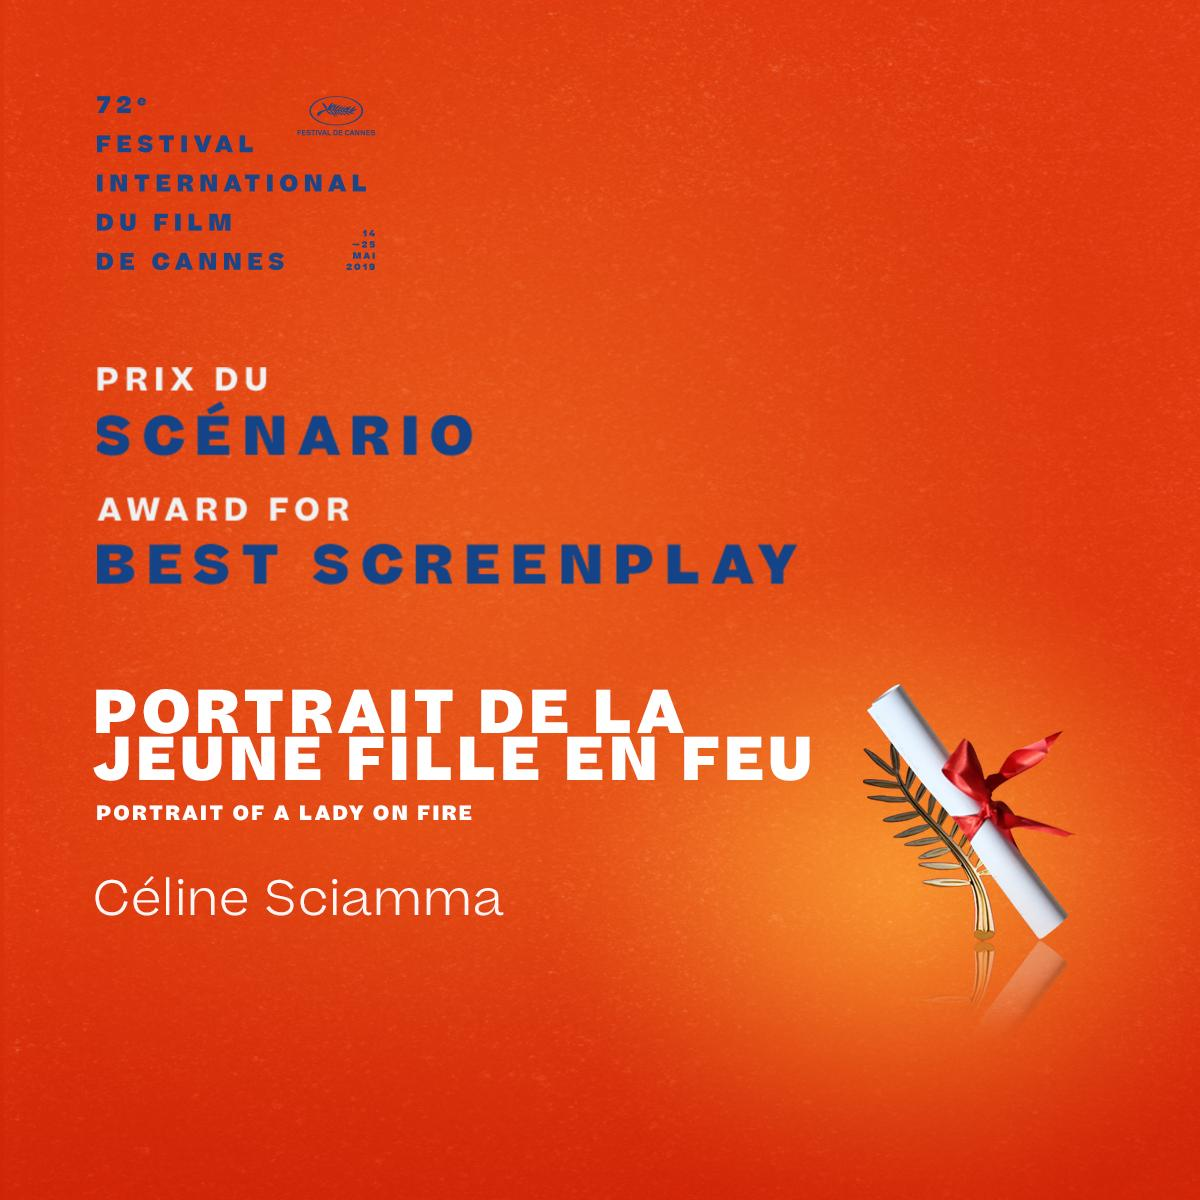 The Award for Best Screenplay goes to… Céline Sciamma for #PortraitDeLaJeuneFilleEnFeu  #Cannes2019 #Awards https://t.co/7HSeIhndeN